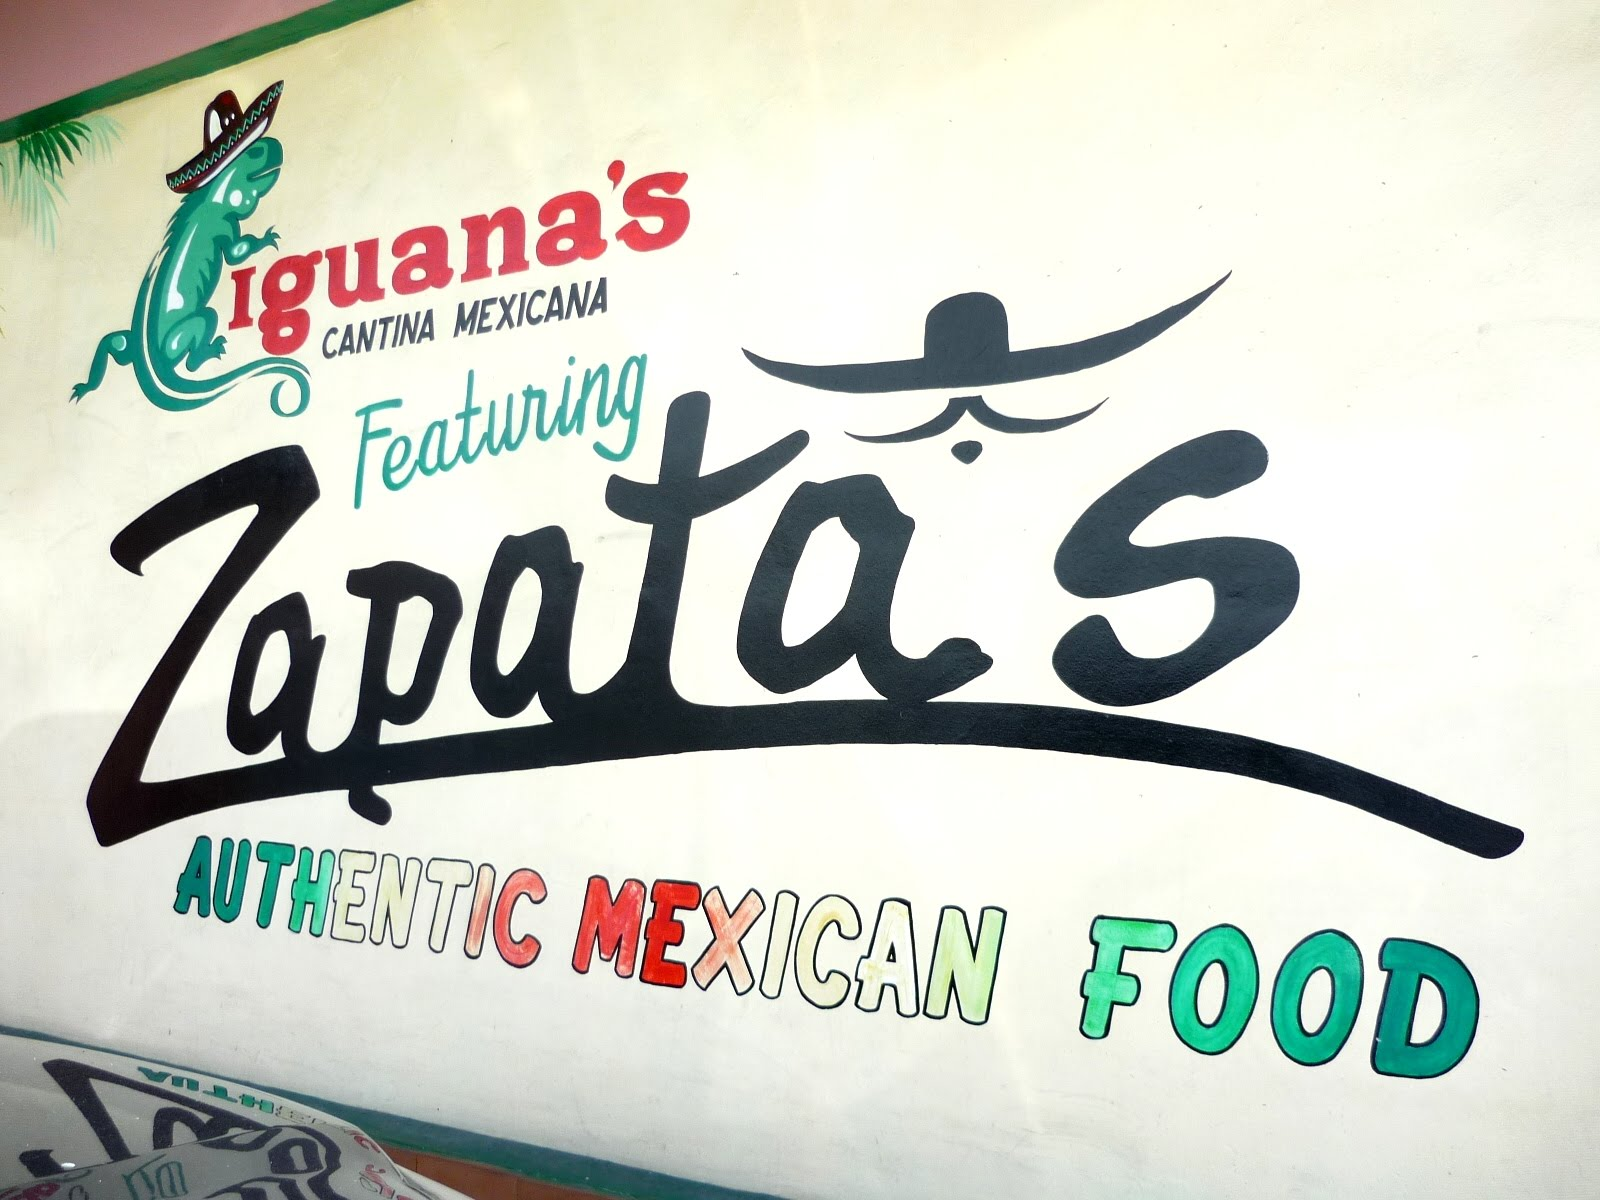 Culinary conquests iguana 39 s cantina mexicana formerly zapata 39 s in angeles pampanga - Iguanas mexican grill cantina ...